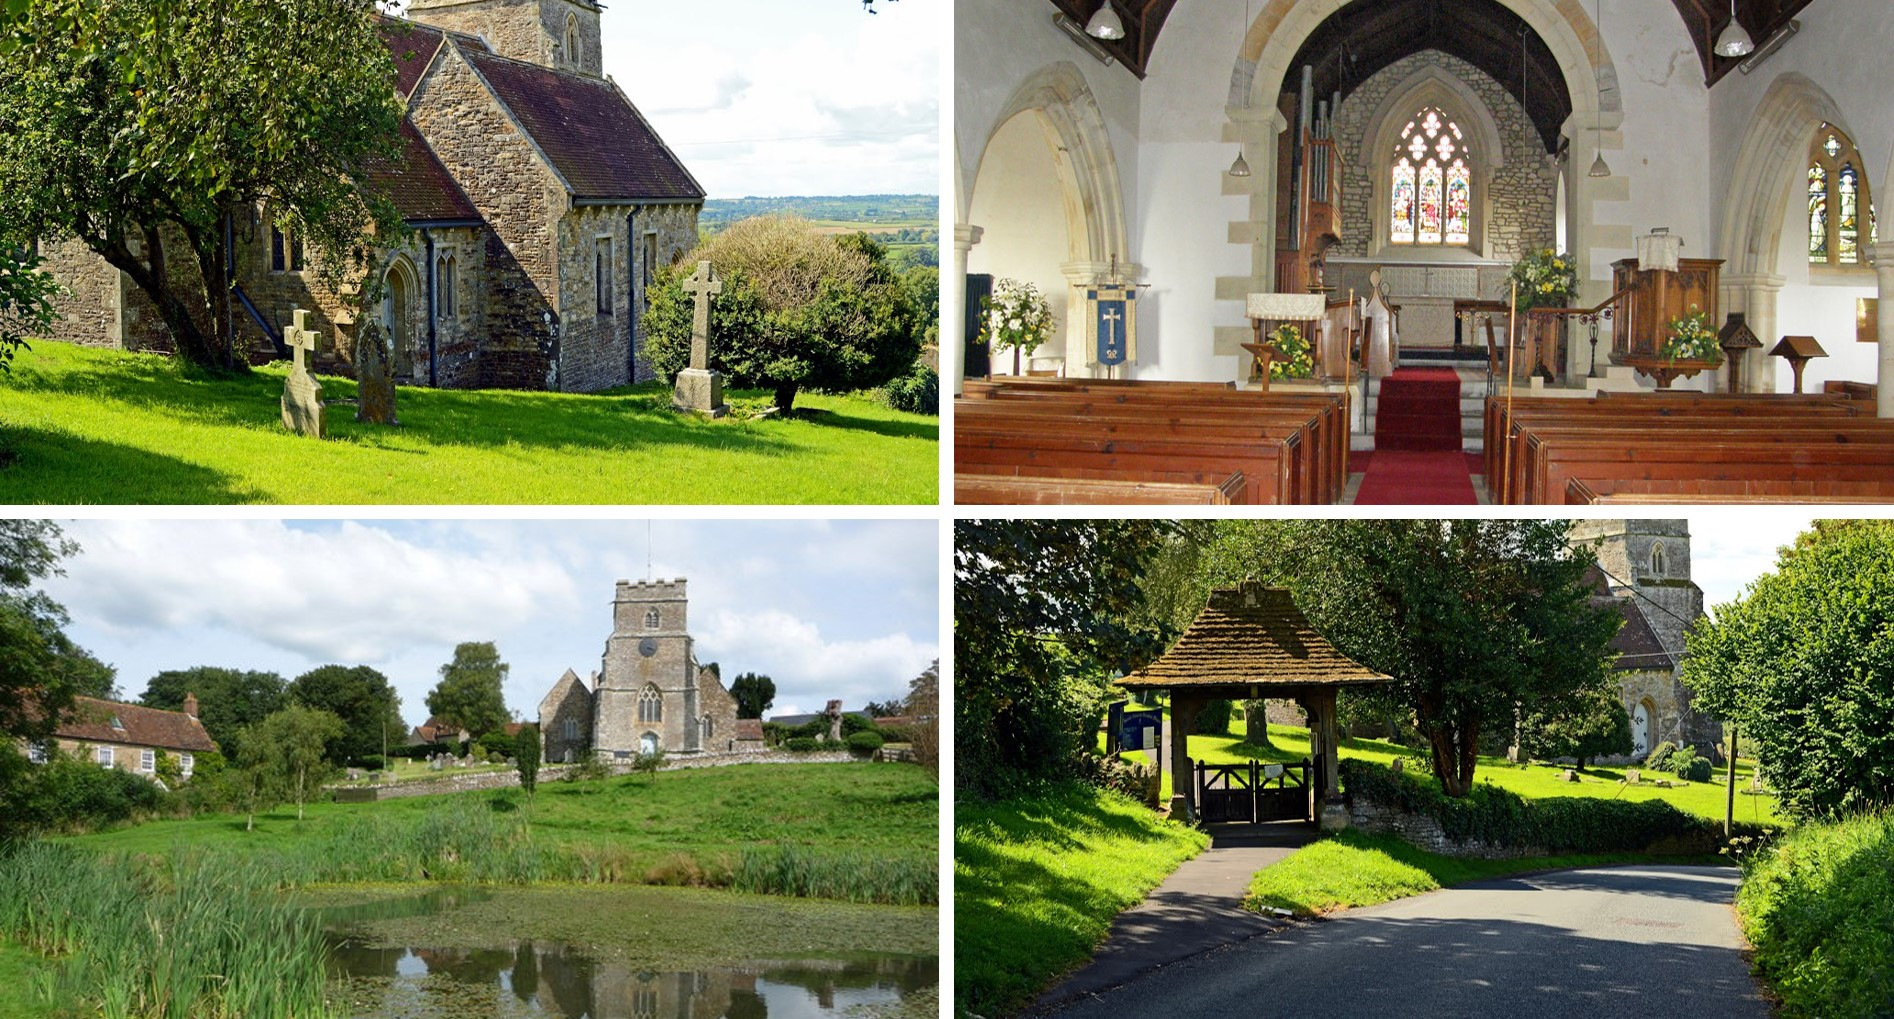 Four images of All Saints church. Top left is a view looking downhill across the cemetery to the church. Top right show a view of the congregation and alter. Bottom left shows a view of the church looking uphill from the ponds. Bottom right shows a view of the top gate.